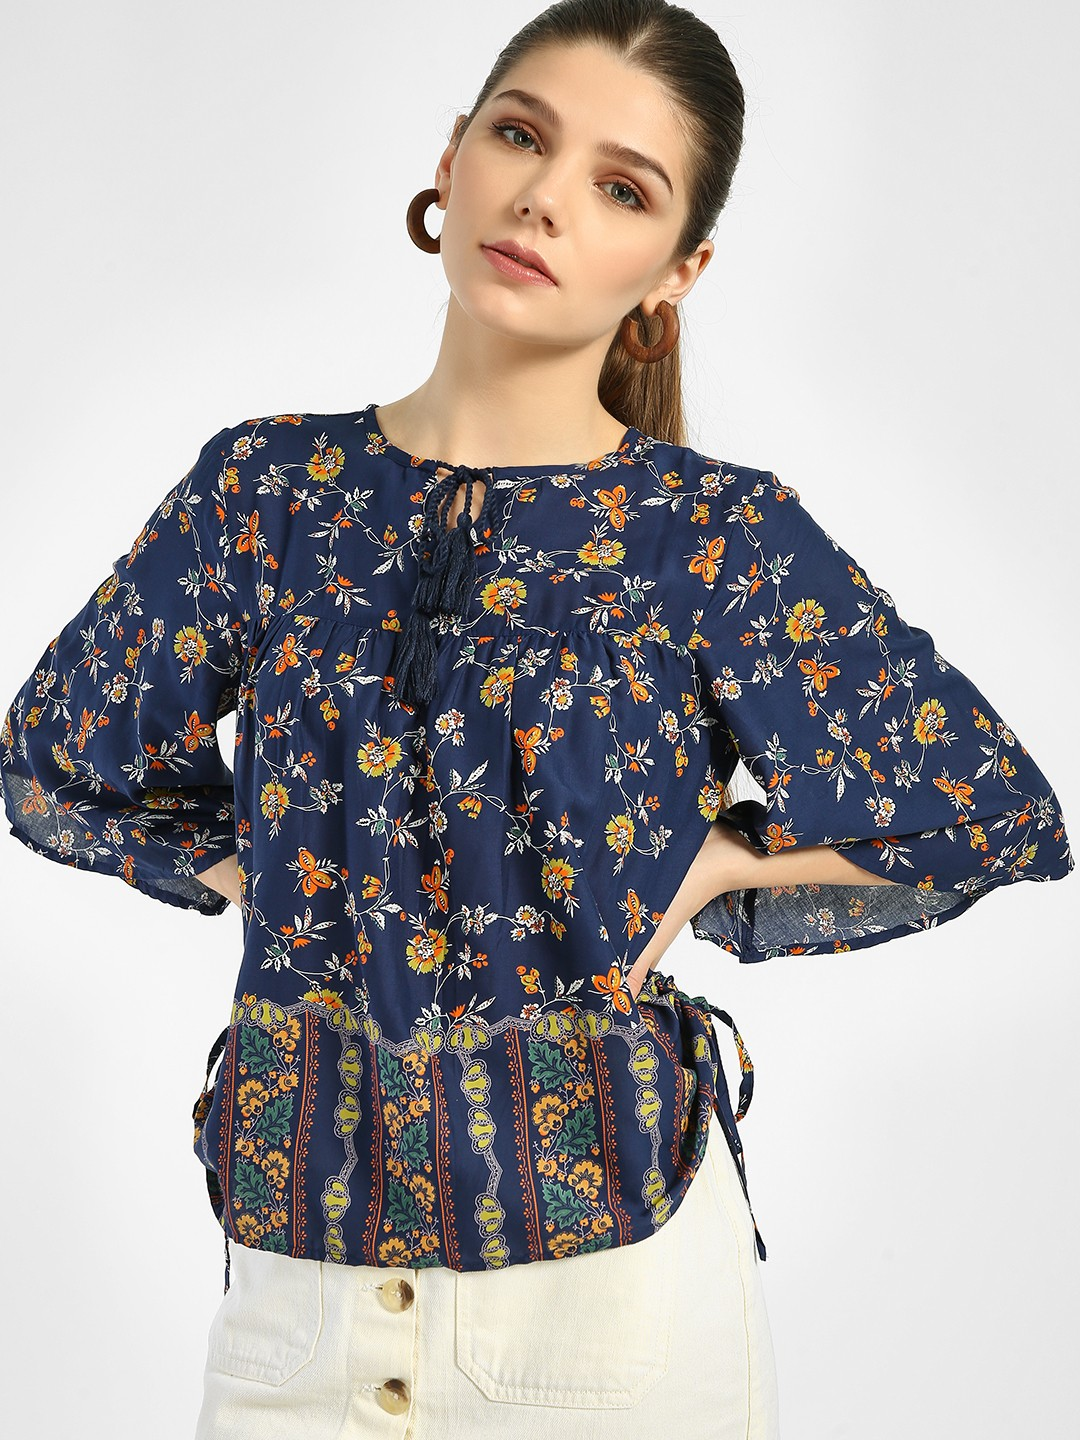 Lee Cooper Navy Blue Floral Print Peplum Blouse 1